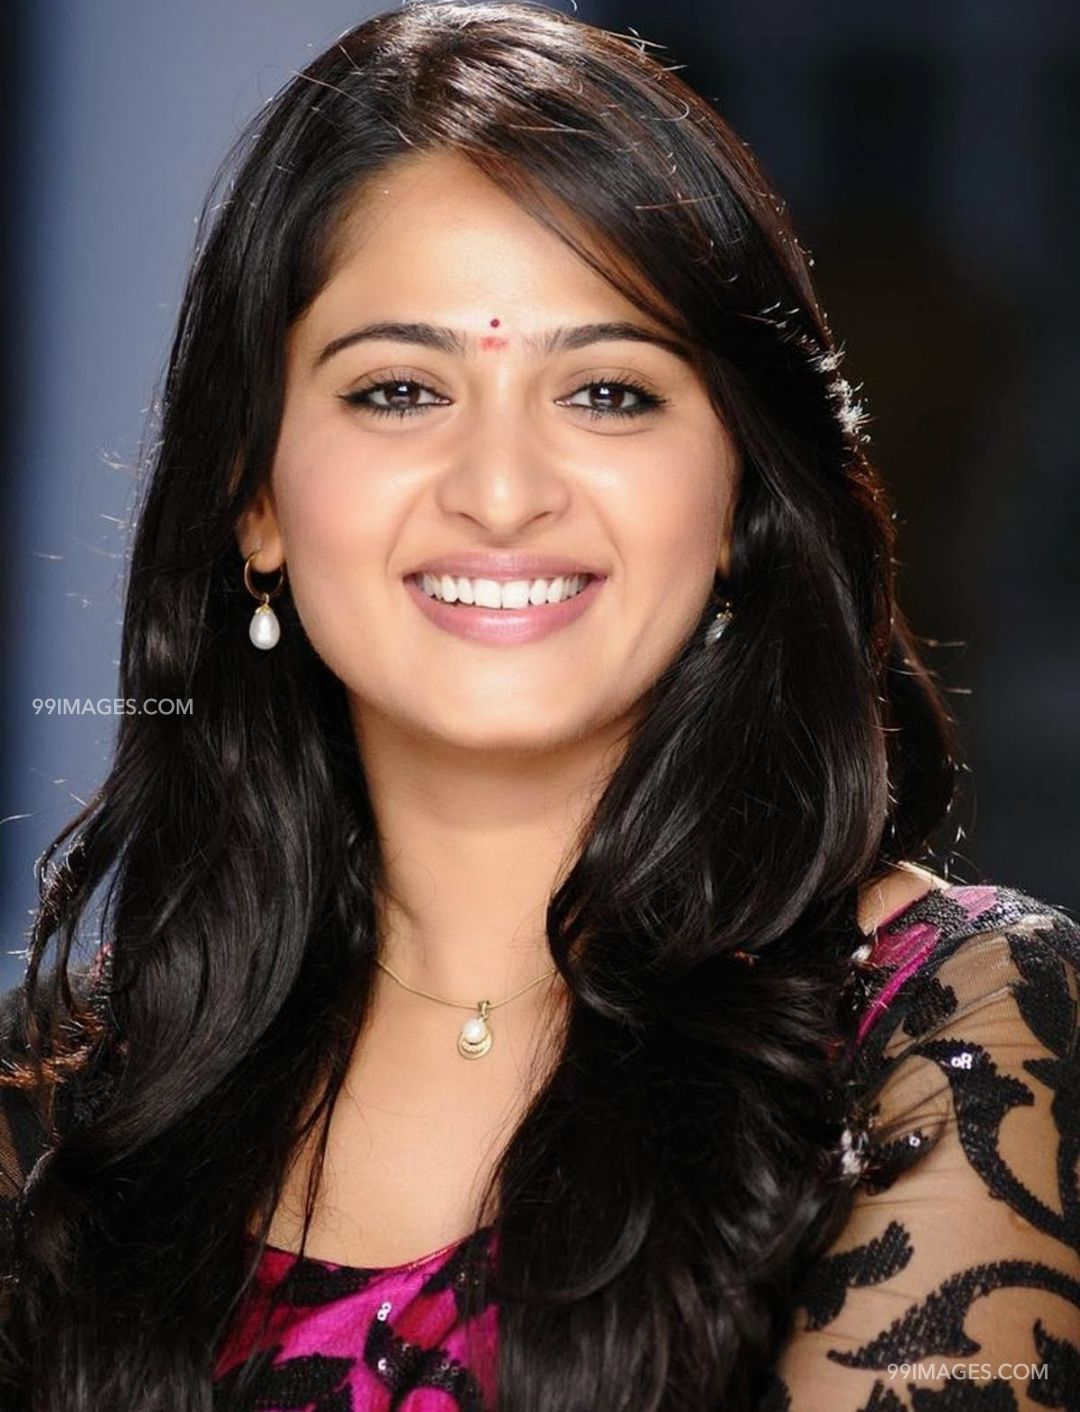 Anushka Shetty Beautiful HD Photoshoot Stills (1080p) (3685) - Anushka Shetty